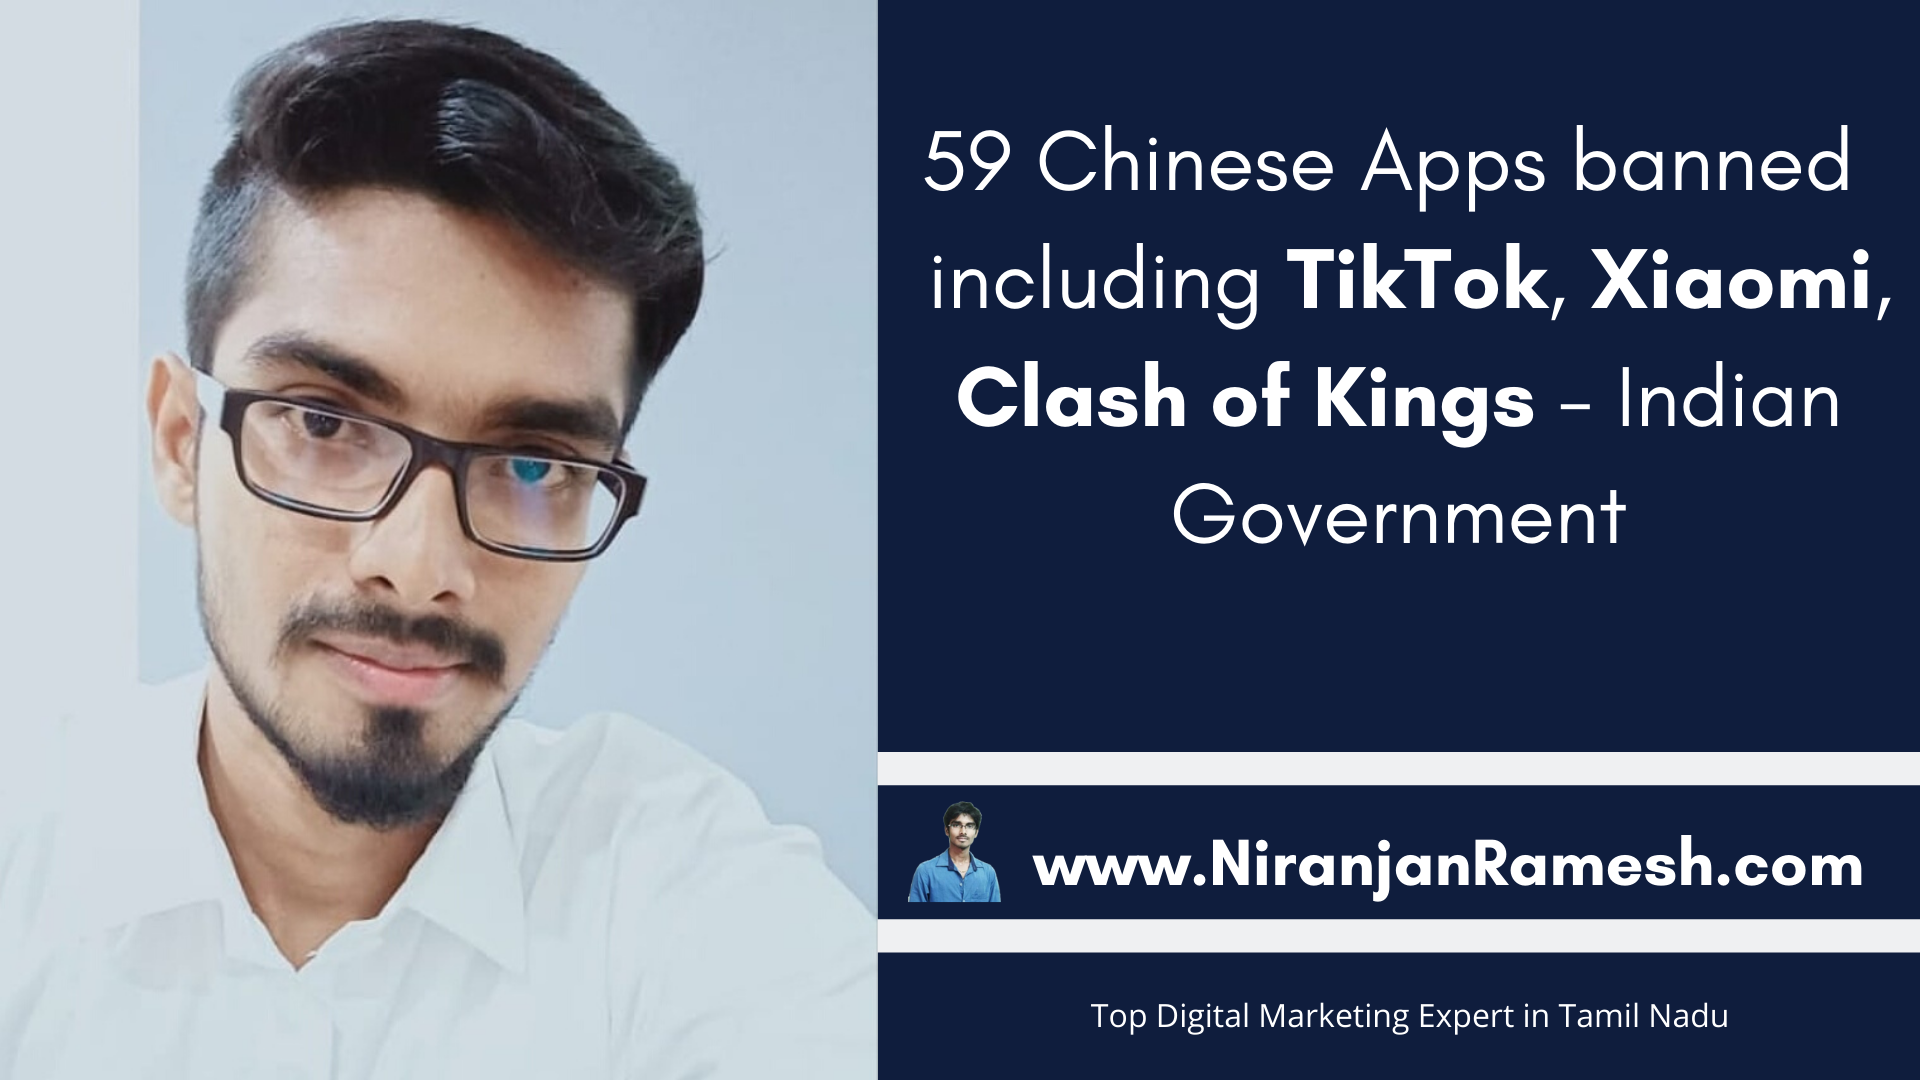 59 Chinese Apps banned including TikTok, Xiaomi, Clash of Kings – Indian Government